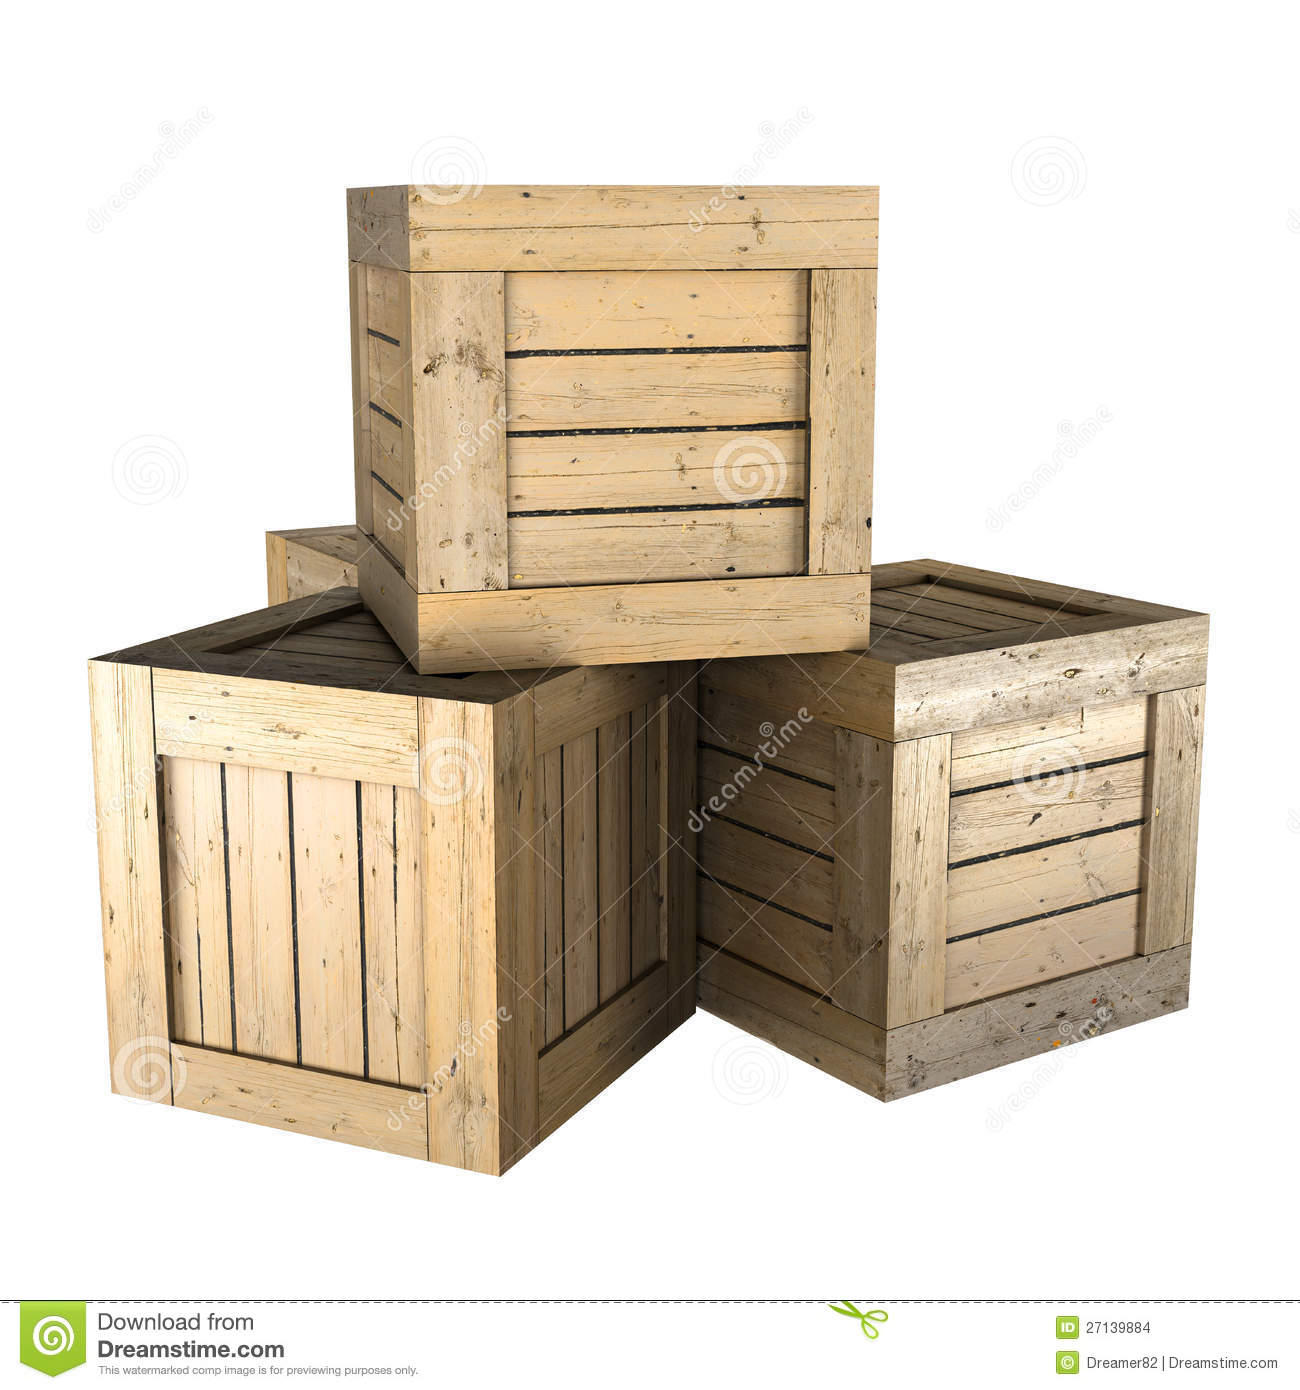 how to build a shipping crate for art